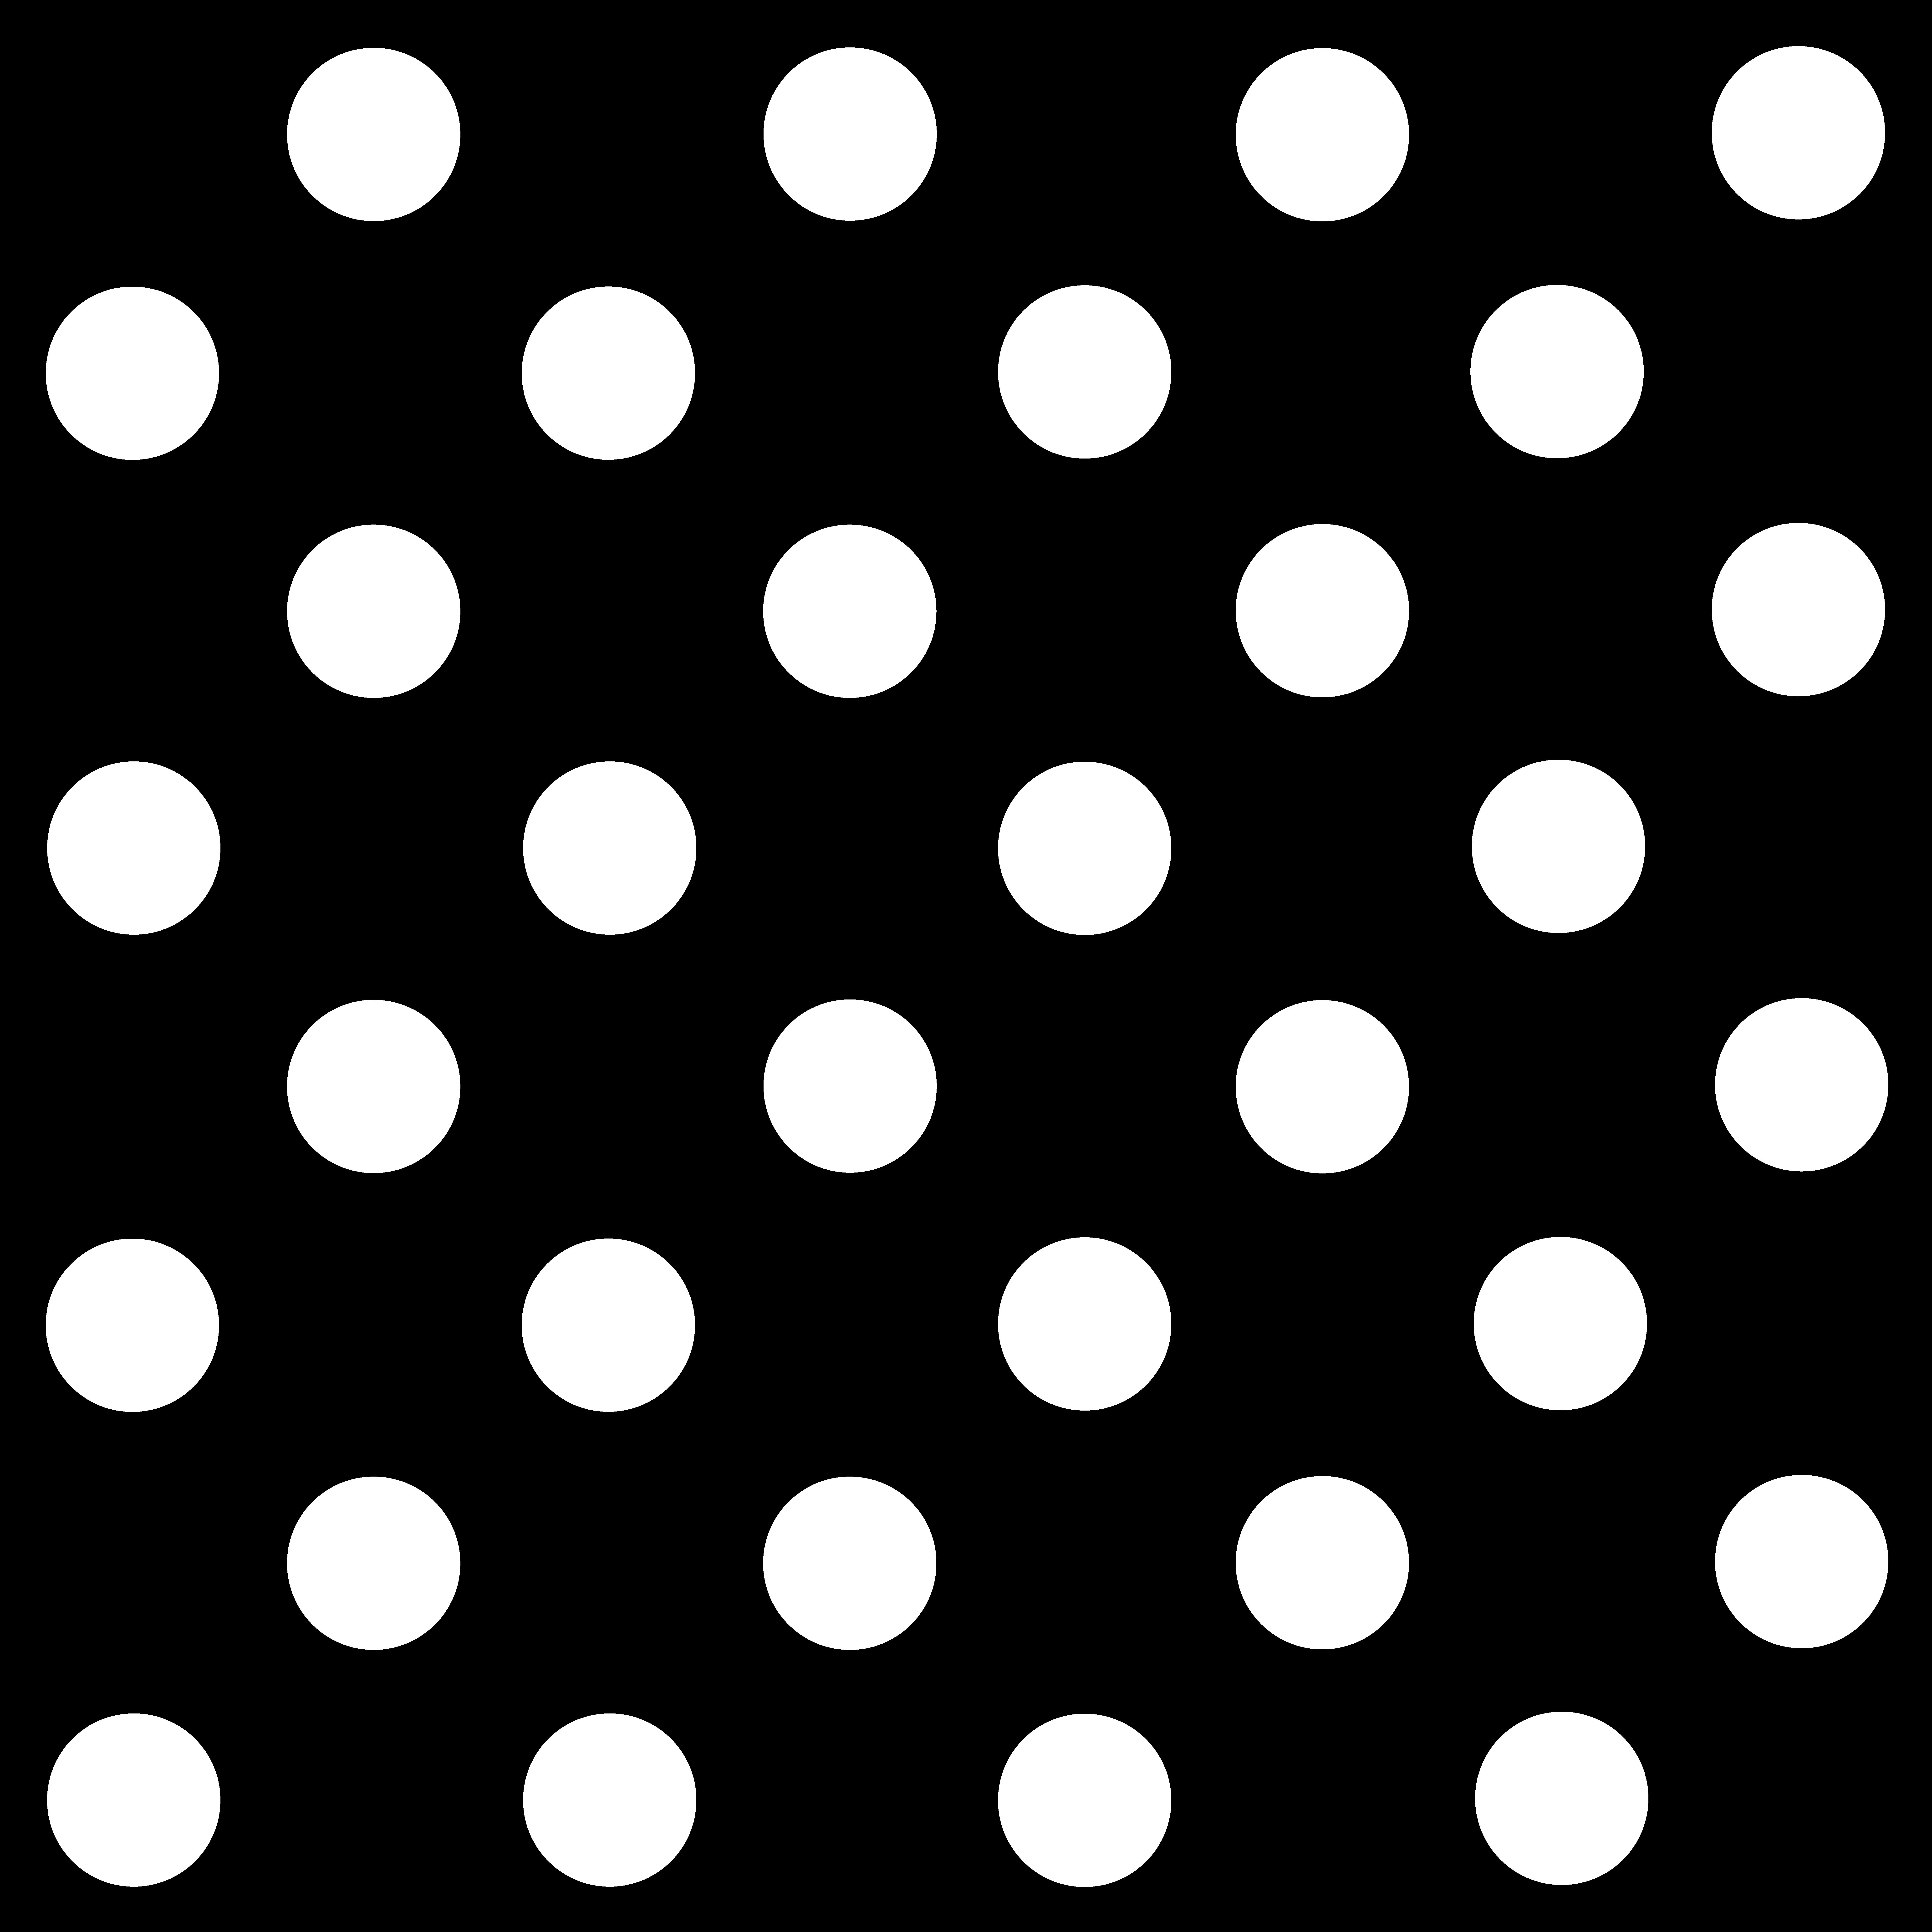 15 Ideas For Vintage Pattern Background Black And White Iphone Wallpapers Polka Dots Wallpaper Black And White Wallpaper Iphone Dots Wallpaper